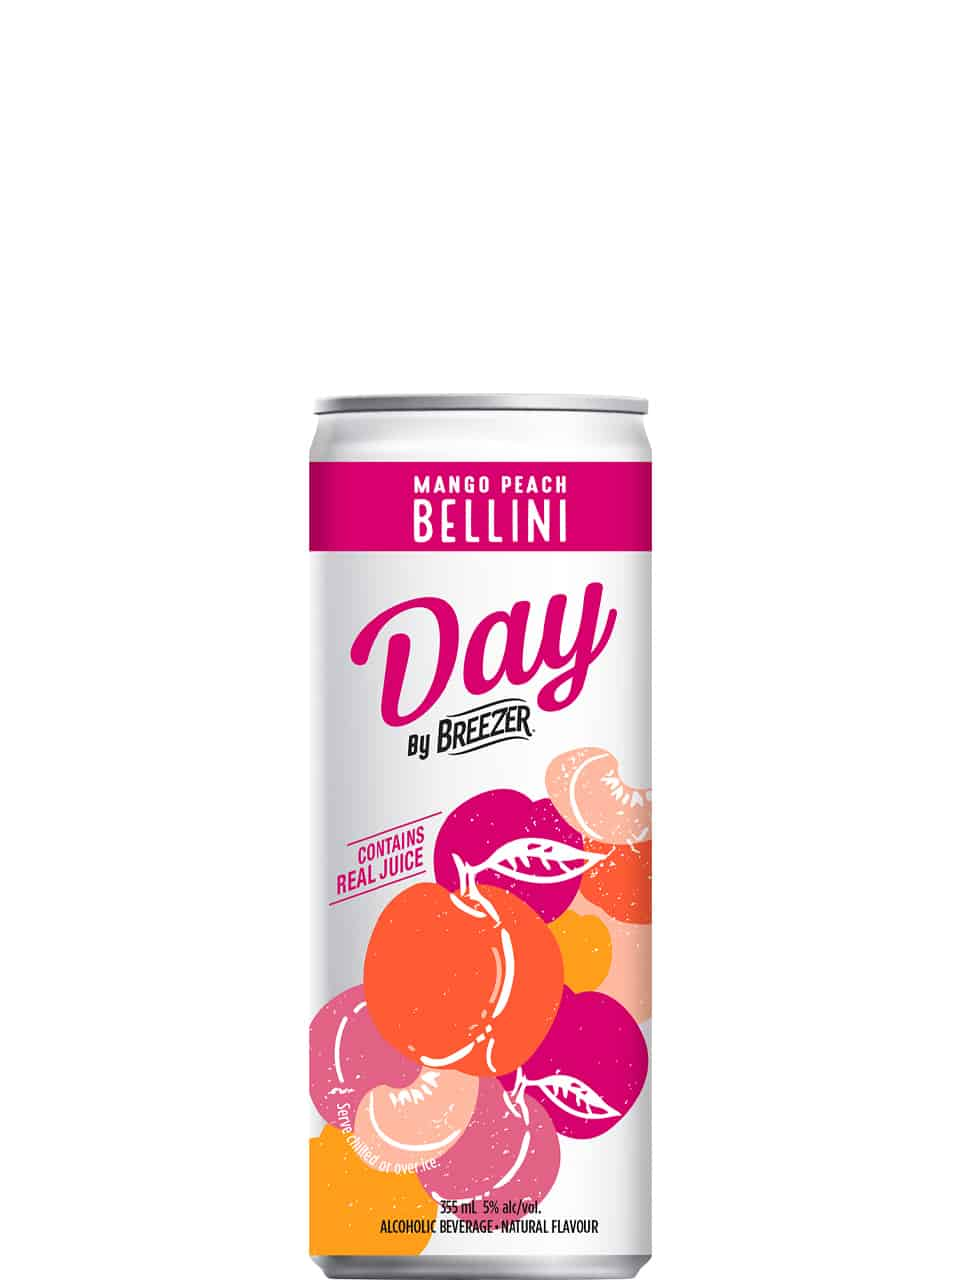 Breezer DAY Peach Mango Bellini 6 Pack